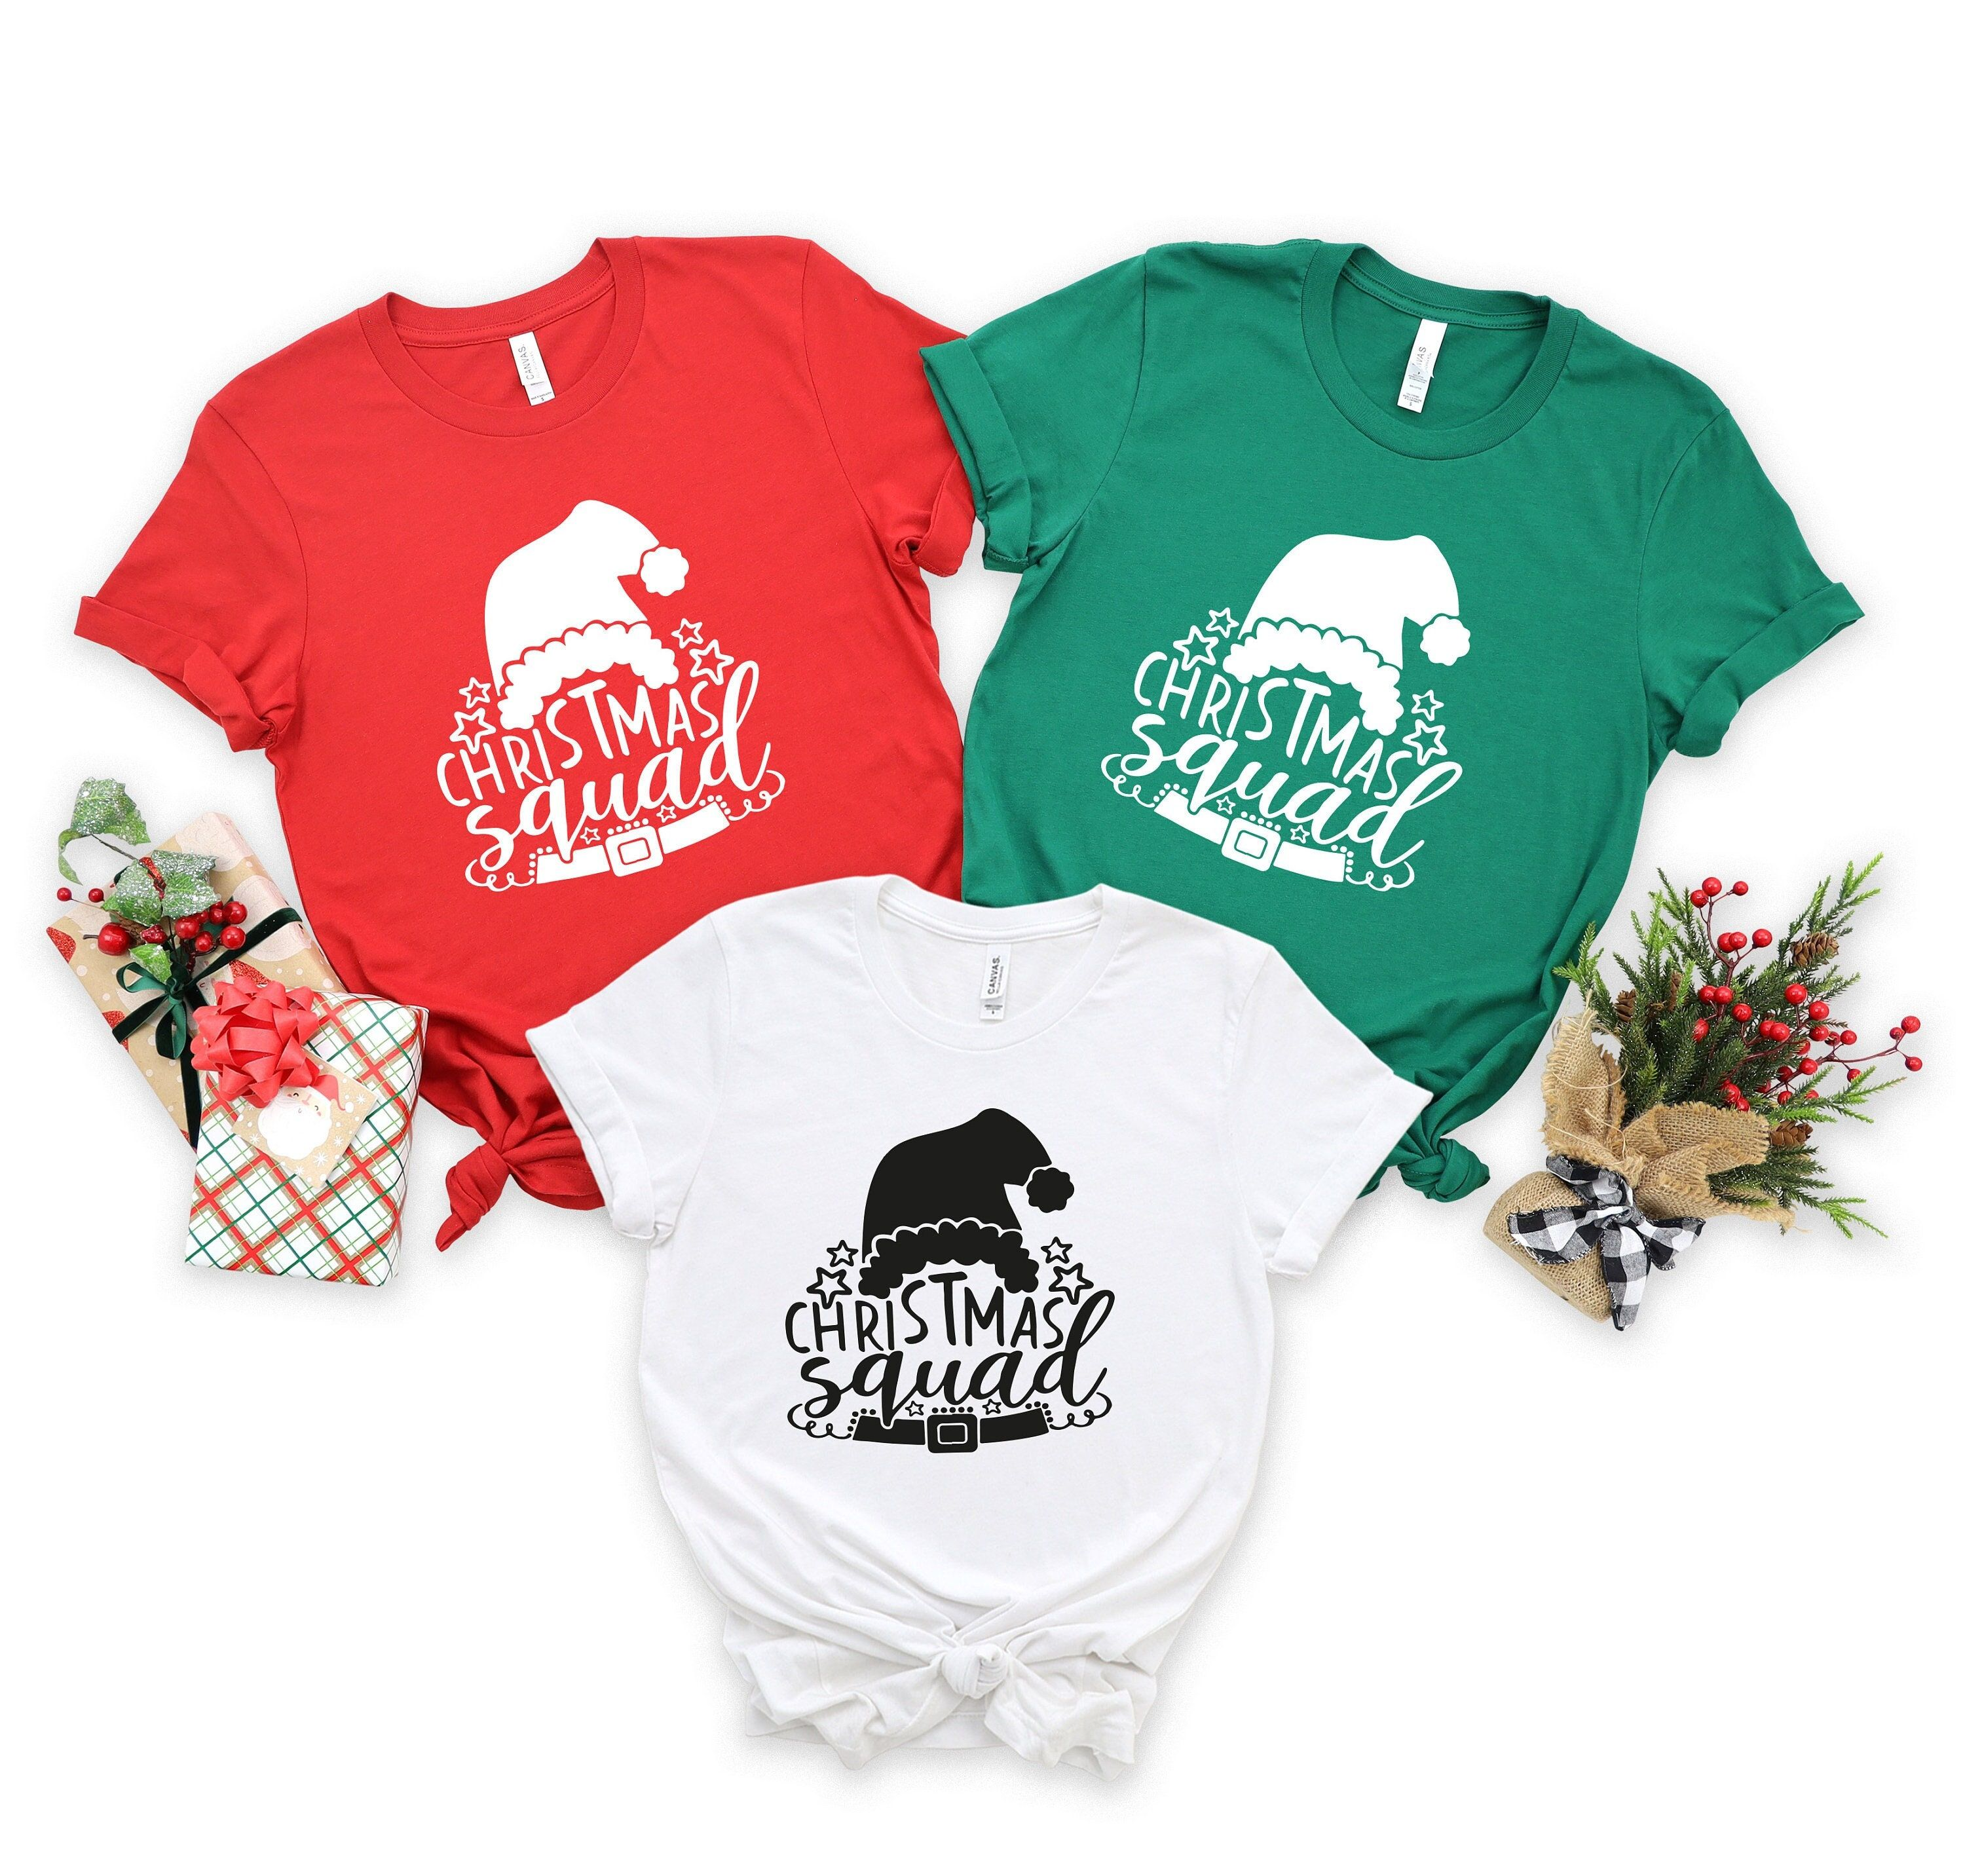 Christmas Squad Shirt, Christmas Family Squad Shirts, Christmas Family Shirts, Christmas T-shirt For Family, Custom Xmas Shirt, Xmas Gift and more custom / personalized tshirts, at Level Up Tees Online Store! ✔ By gifting it, you can create an unforgettable memory. ✔ This tshirt will make you feel happy and comfortable. ✔ We prepare our products with love and care We are here to provide you perfect designs, high levels of quality and affordable products. We are dedicated to giving you the best c